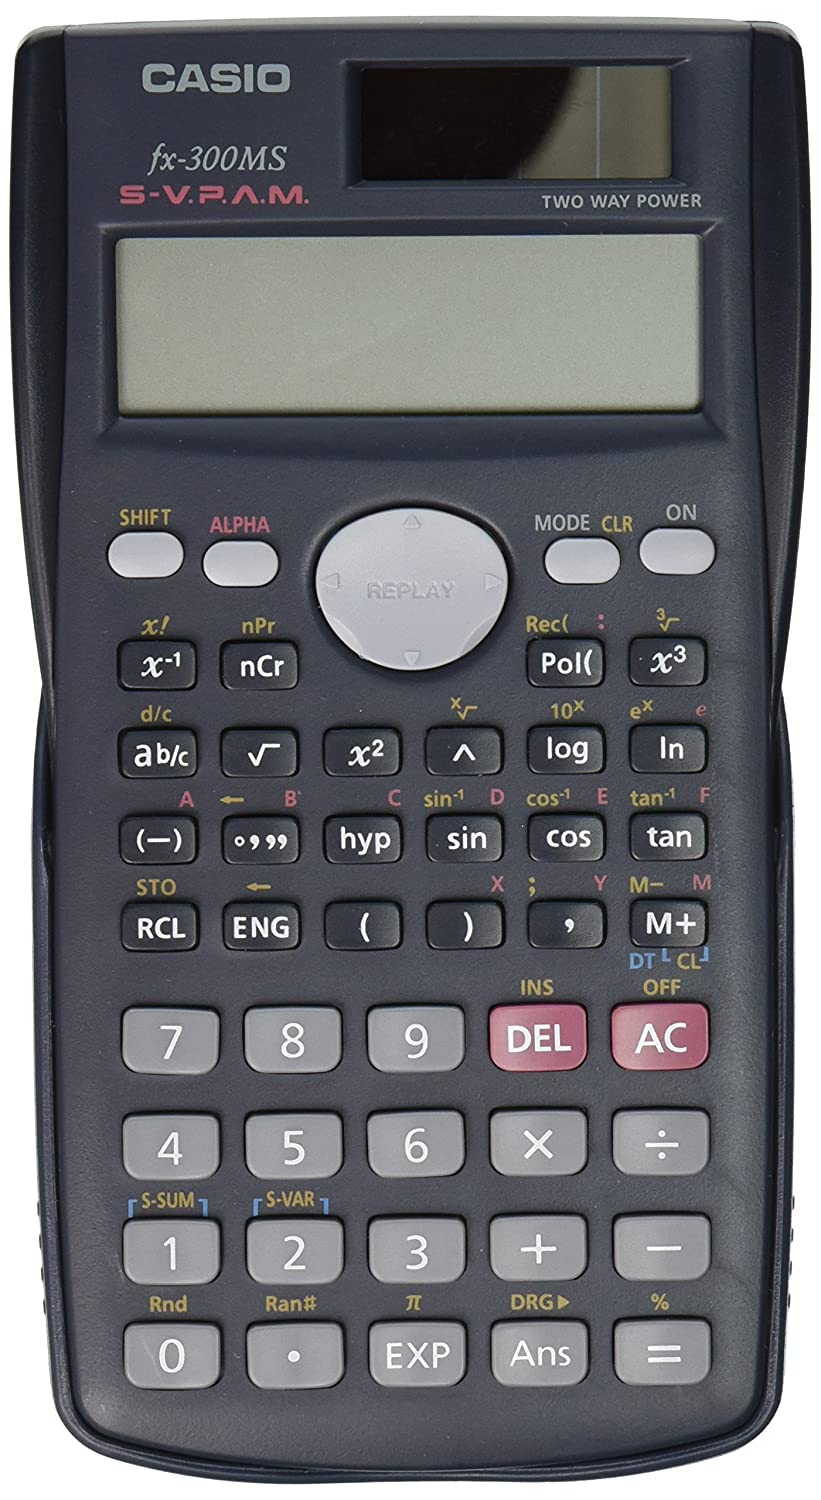 Amazon.com : Casio fx-300MS Scientific Calculator : Office Products